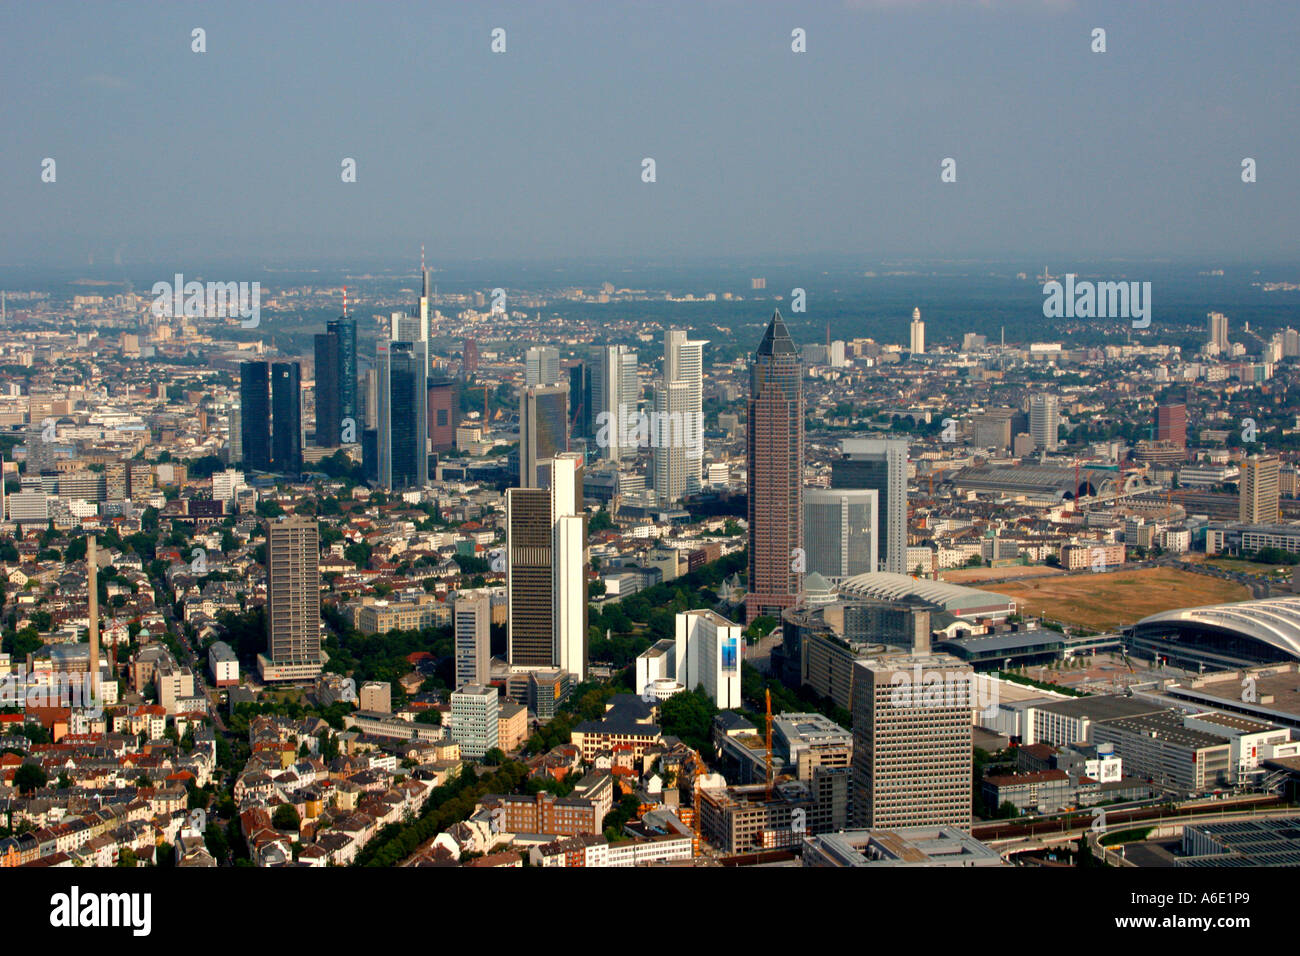 DEU, Germany Skyiline Frankfurt airial view from the west, in the foreground the Messe tower - Stock Image